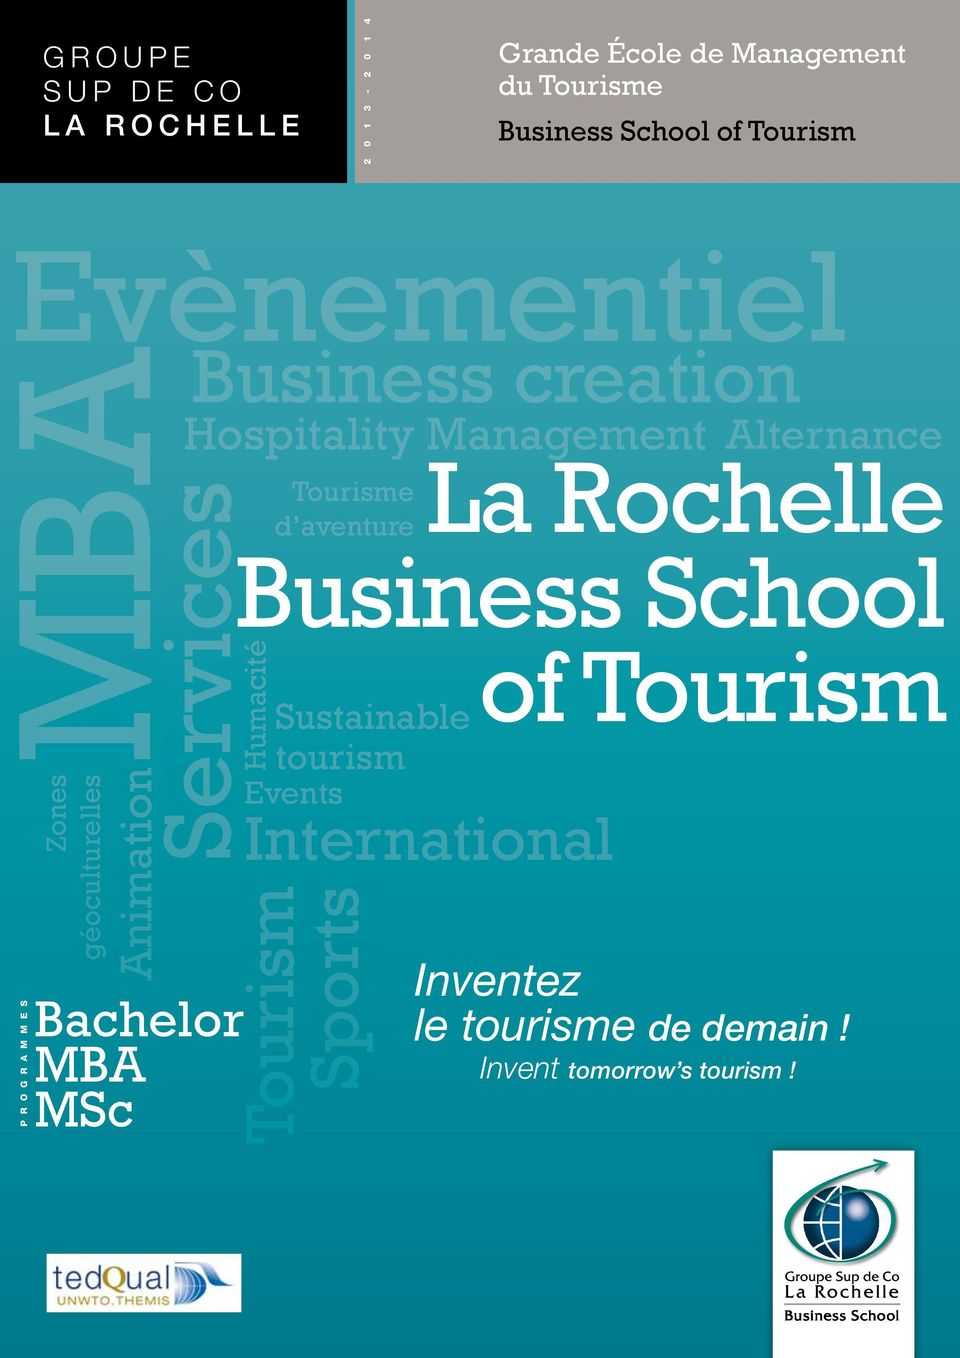 Services La Rochelle Tourisme d aventure Business School of Tourism Sustainable Humacité MBAHospitality